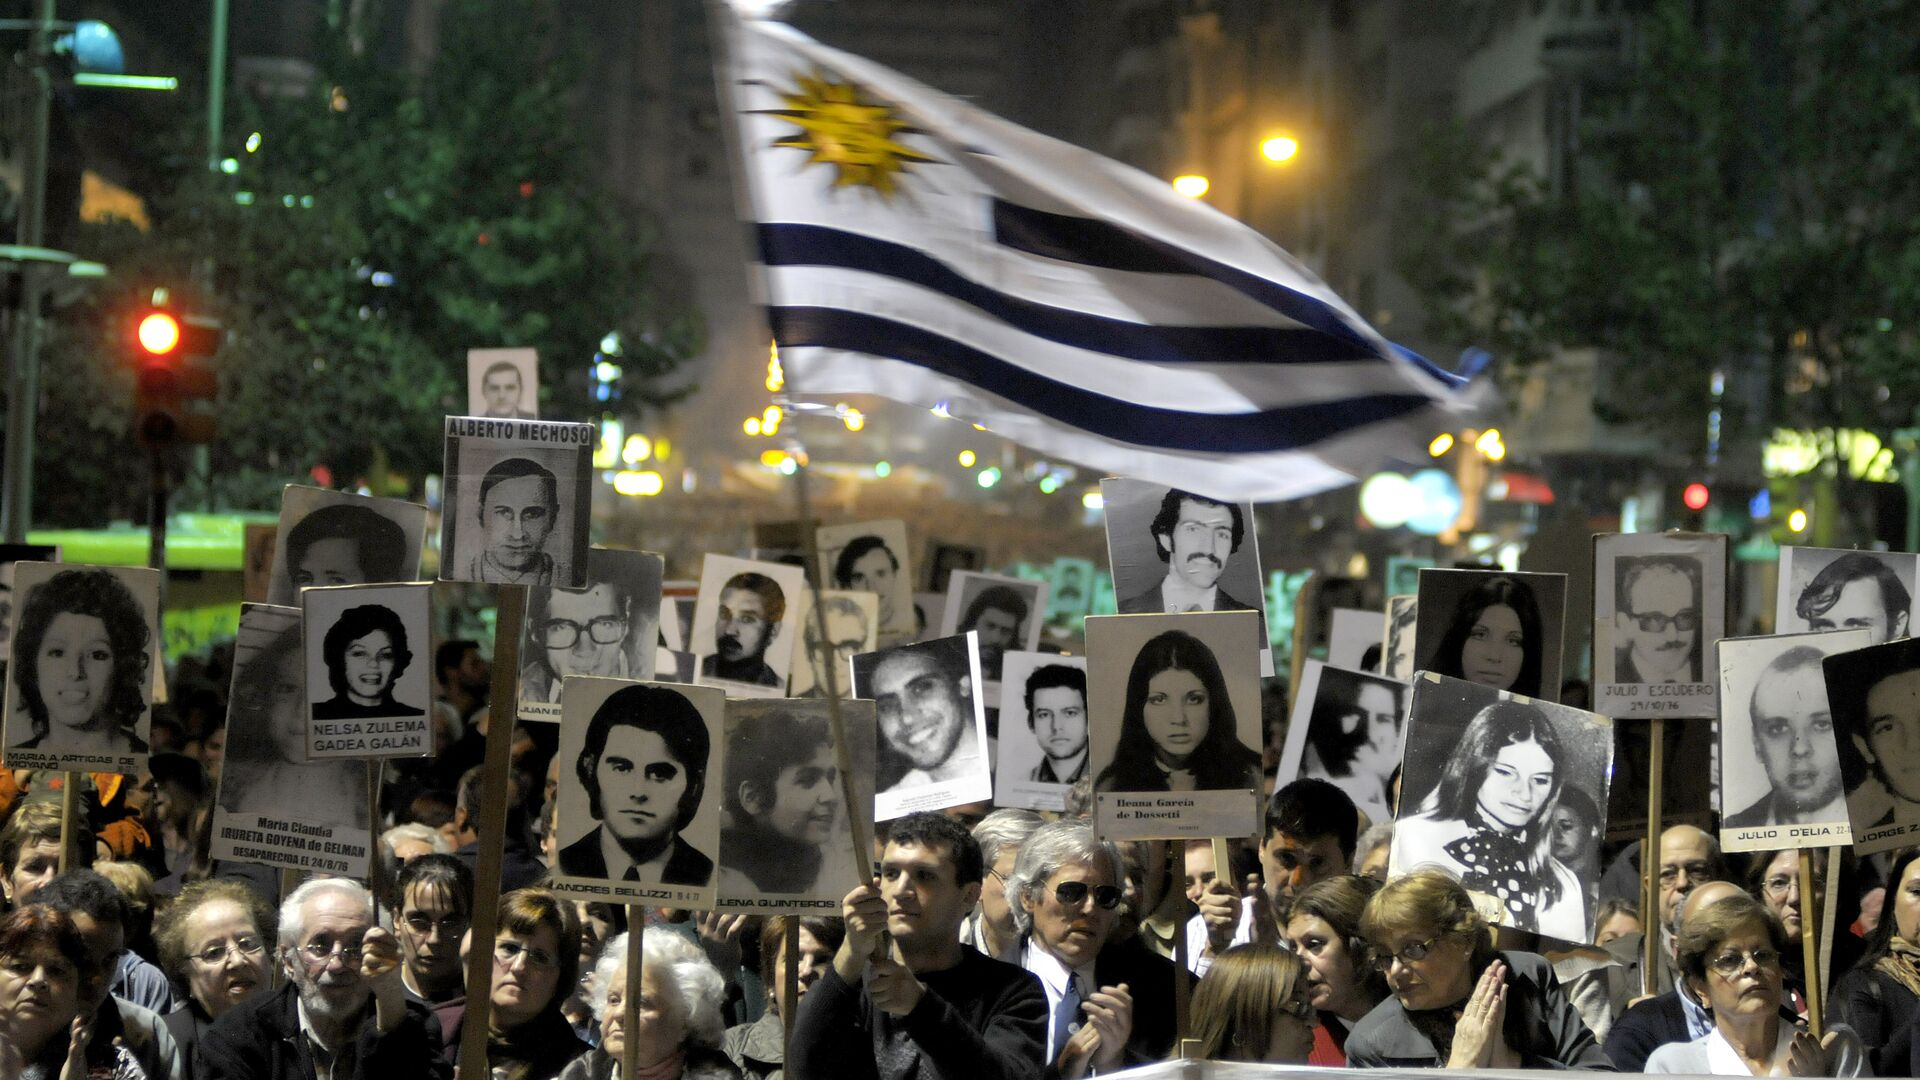 Demonstrators, one waving an Uruguayan flag, carry signs with images of people missing during Uruguay's 1973-85 dictatorship during a march in Montevideo, Uruguay - Sputnik Mundo, 1920, 11.05.2021